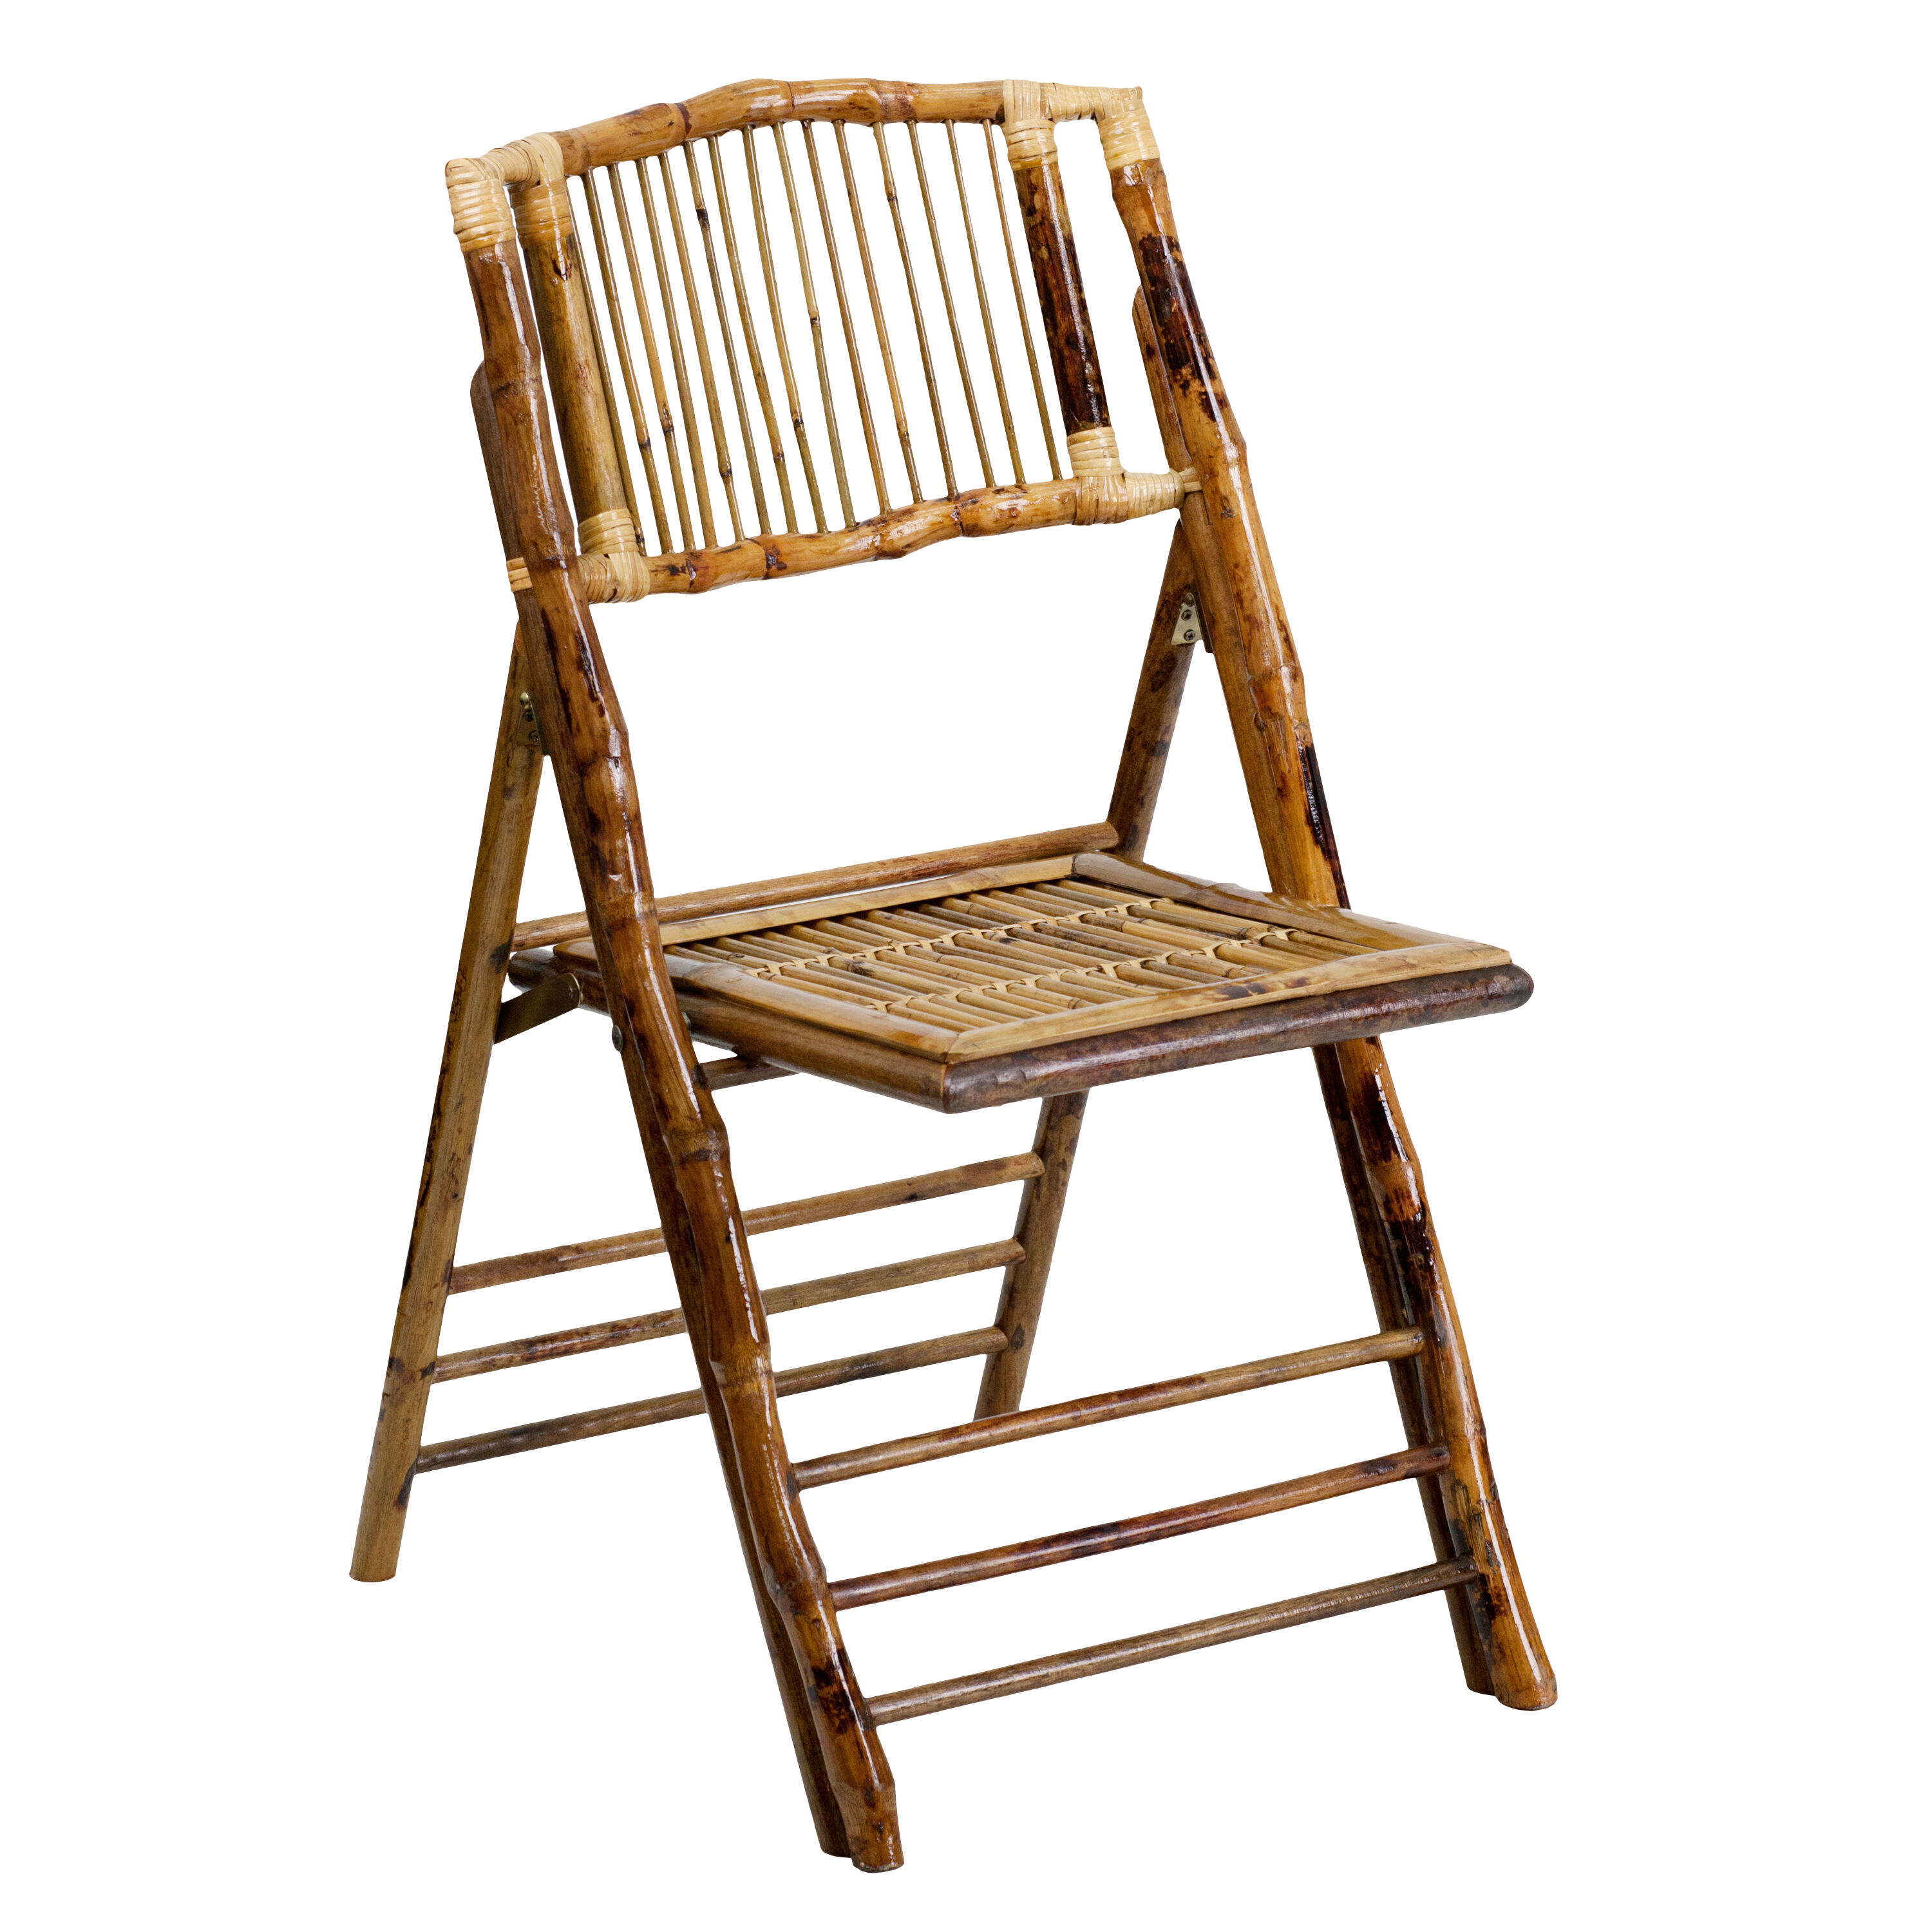 ... Our American Ch&ion Bamboo Folding Chair is on sale now.  sc 1 st  Folding Chairs 4 Less & Bamboo Folding Chair X-62111-BAM-GG | FoldingChairs4Less.com